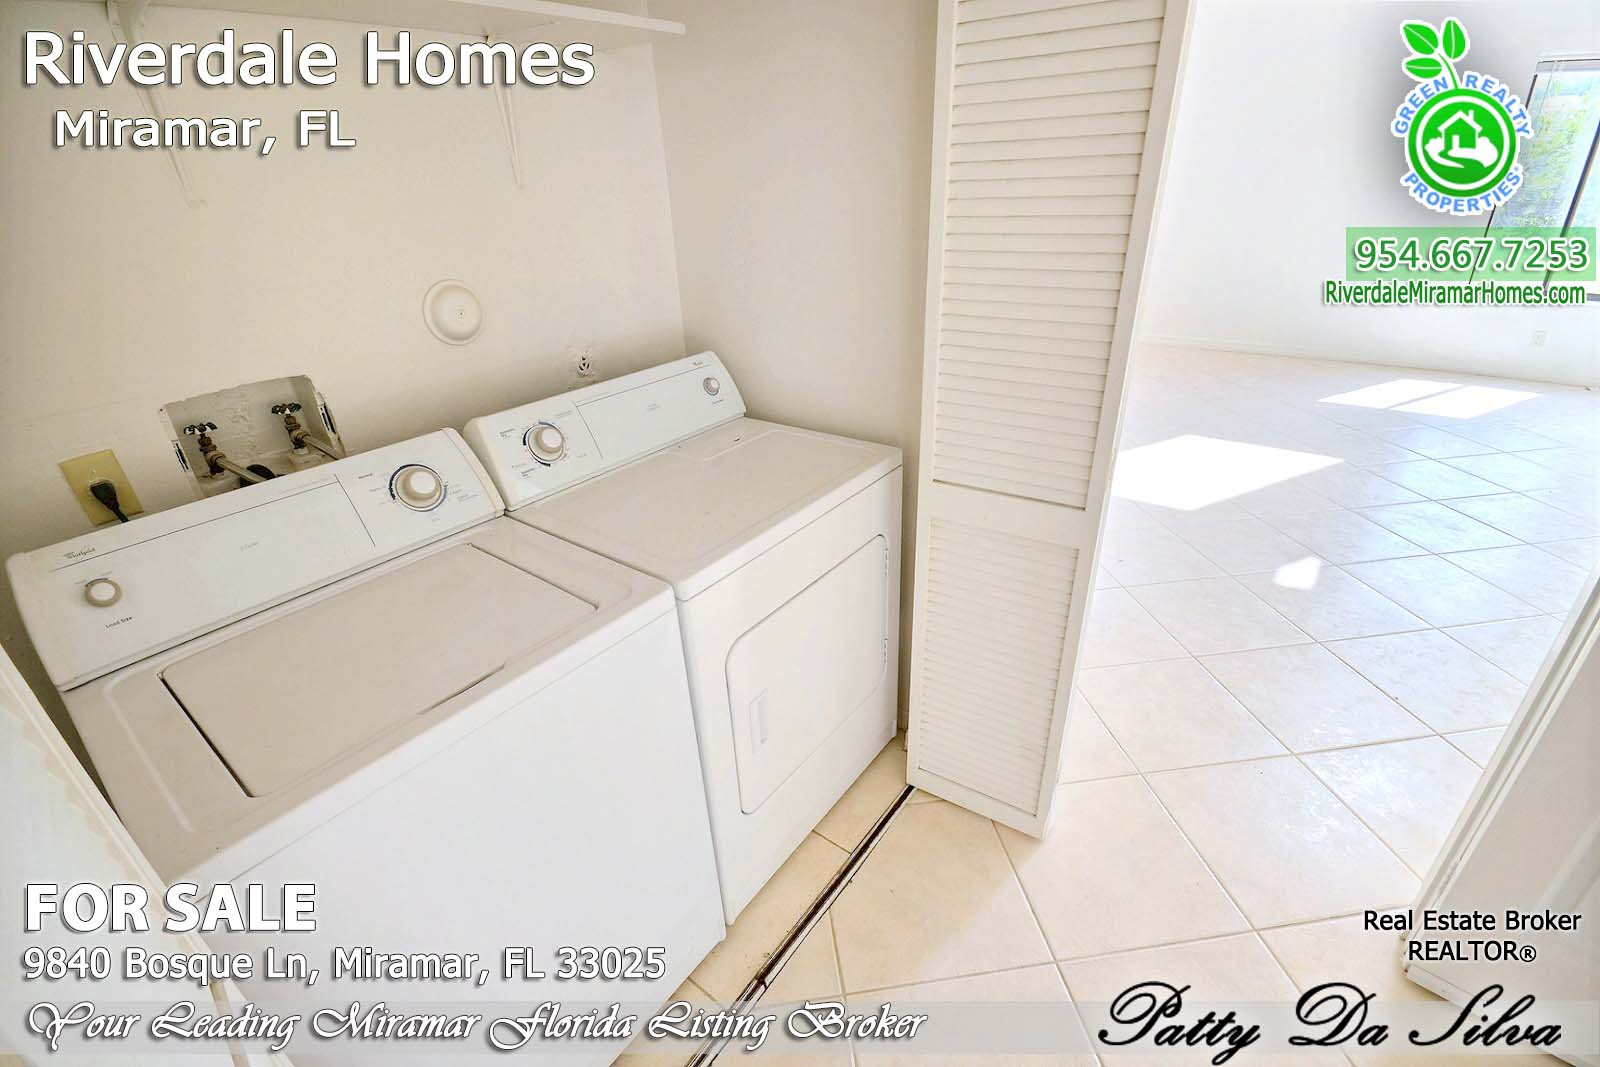 Riverdale Homes For Sale in Miramar Florida - 9840 Bosque Lane (19)